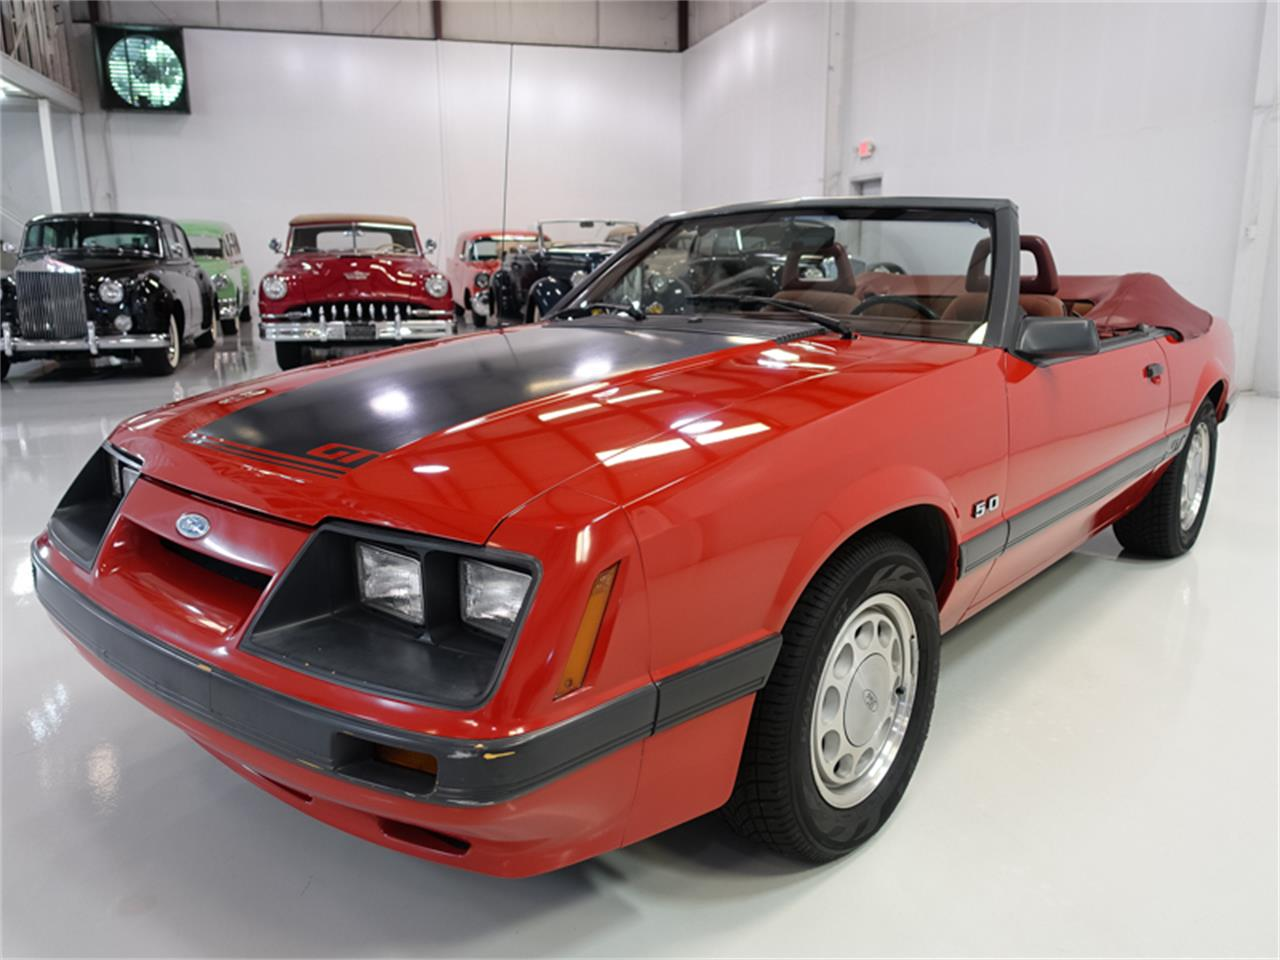 1986 Ford Mustang Gt For Sale Cc 1140751 Large Picture Of Offered By Daniel Schmitt Co Og7j